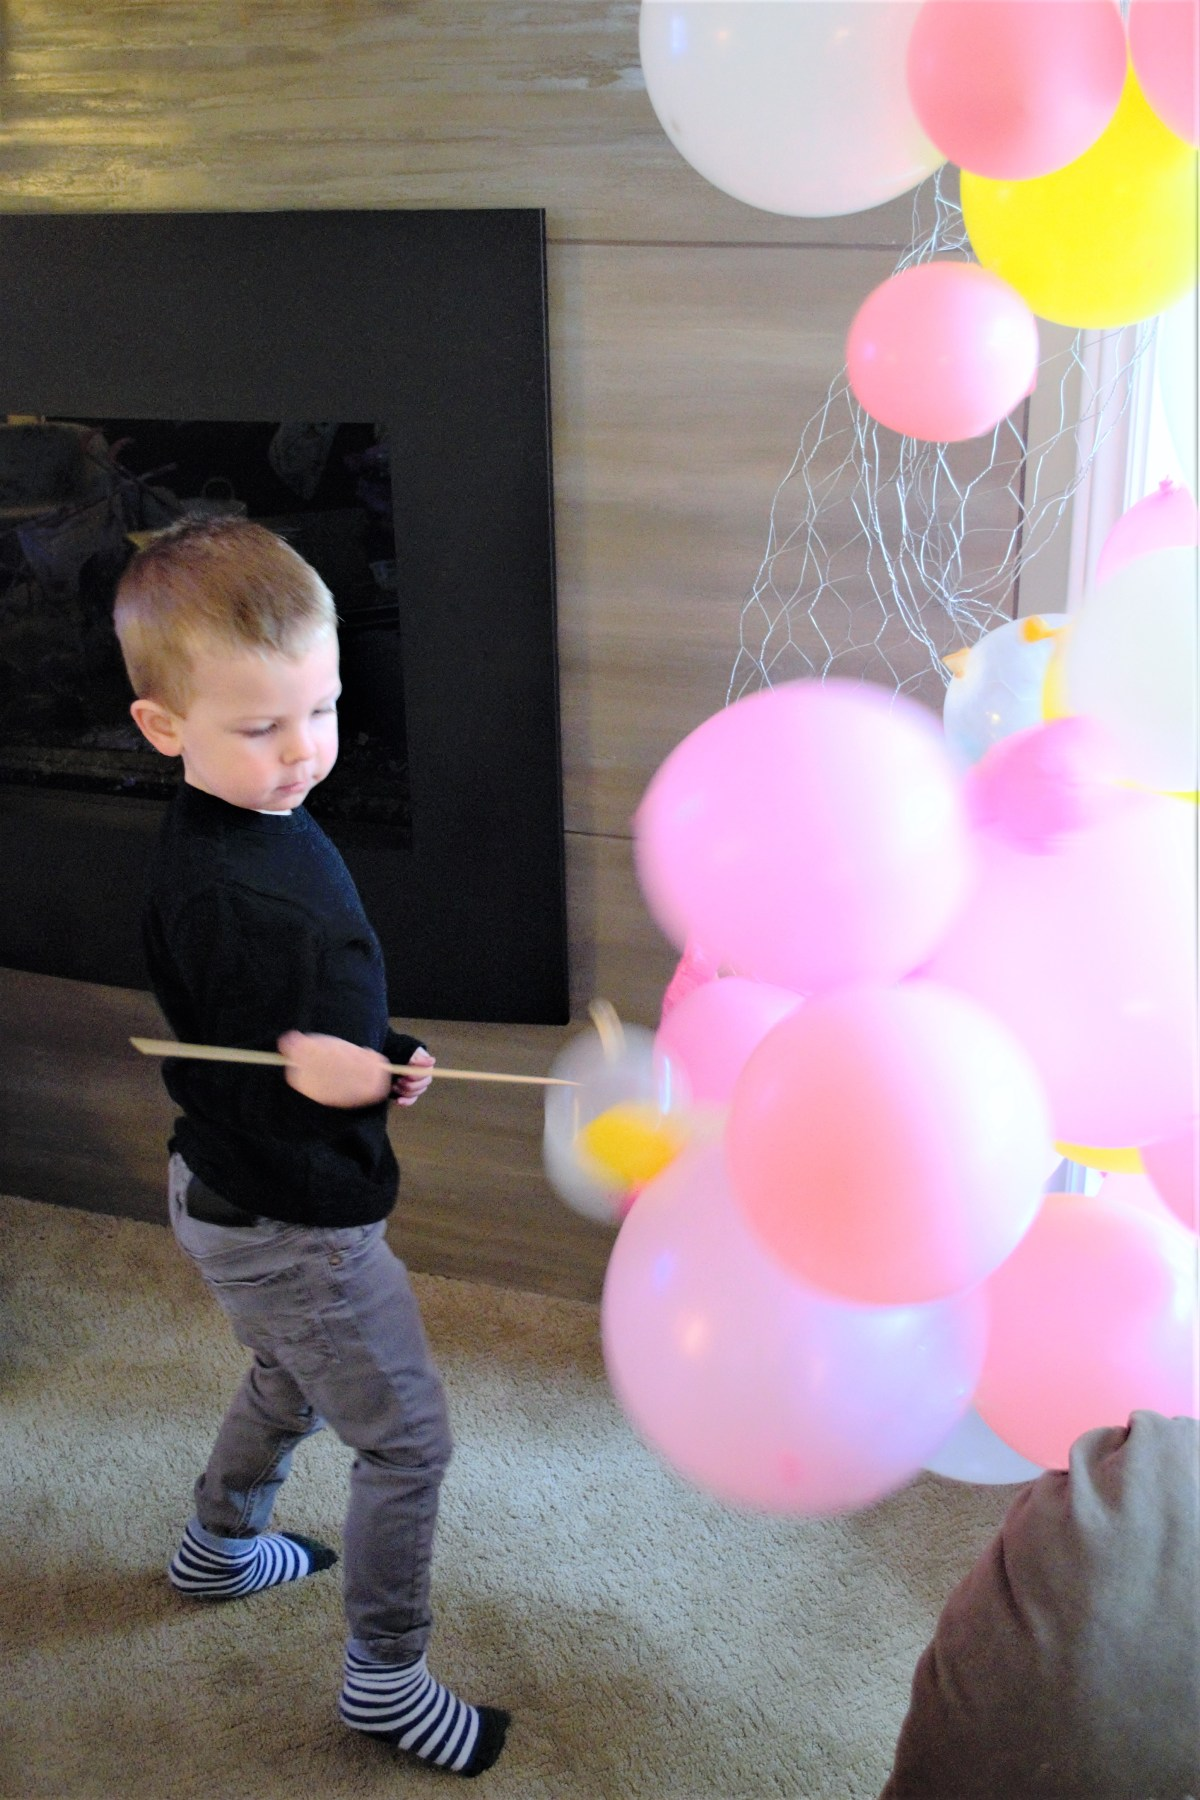 Balloon Arch Tutorial! - child with sharp object